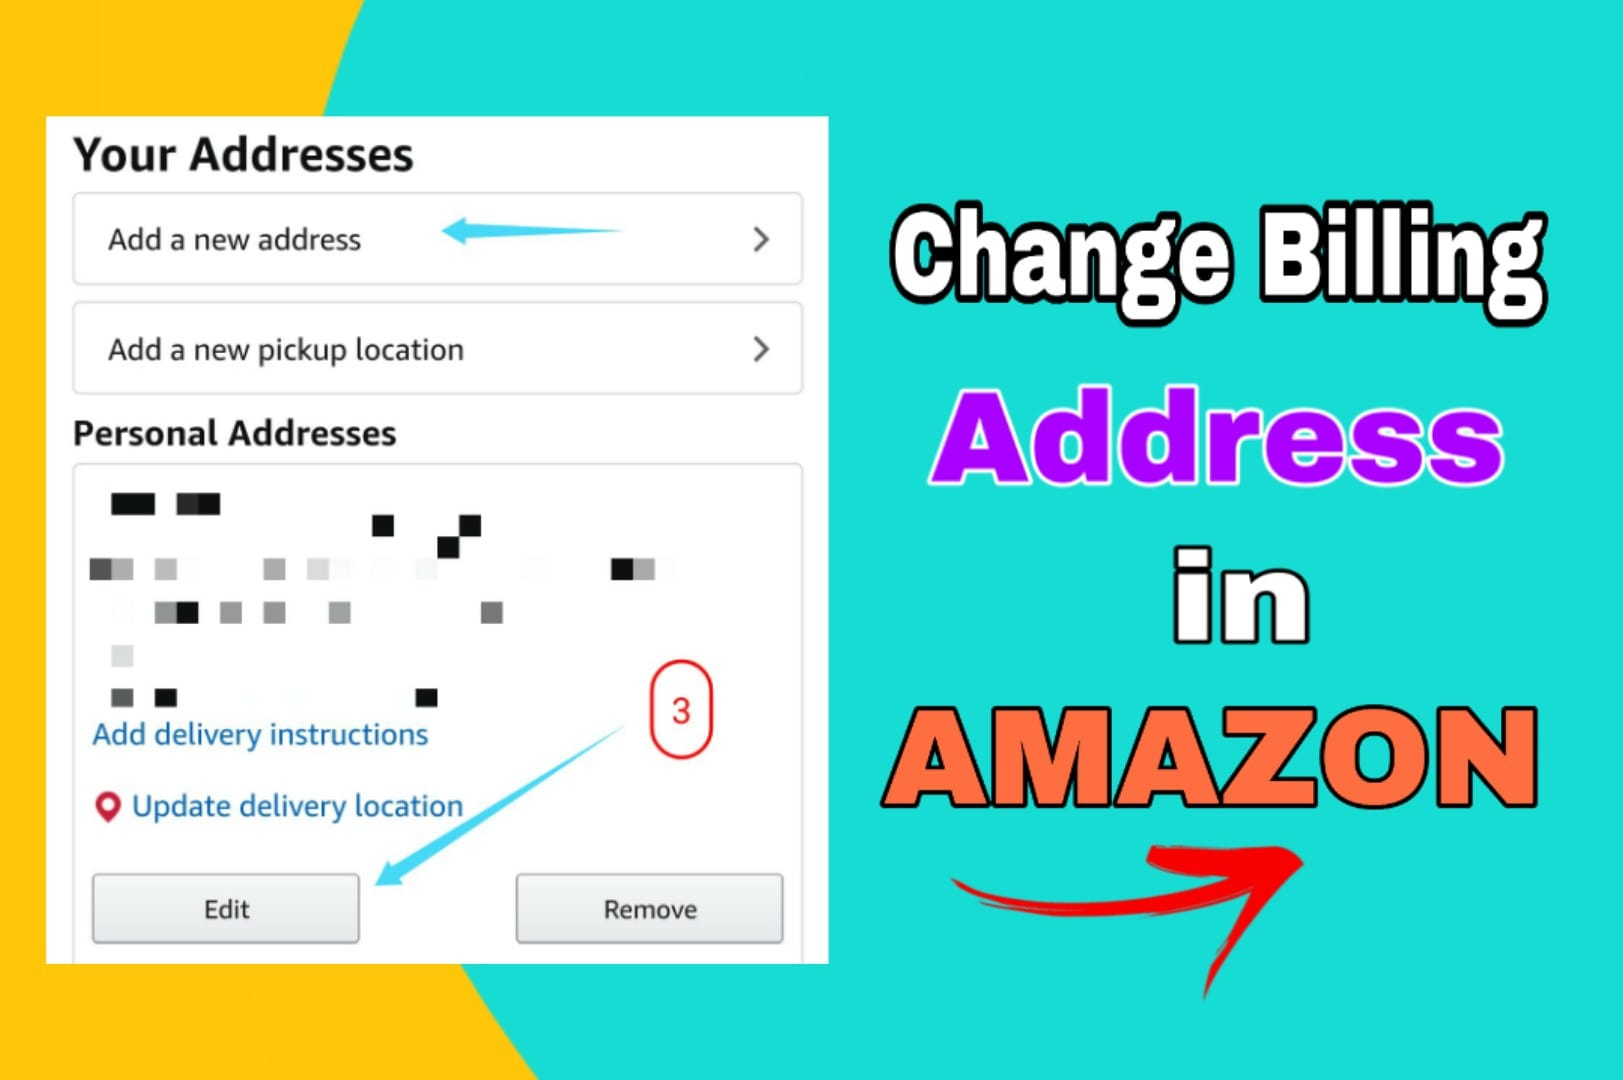 How to Change Billing Address in Amazon? 2